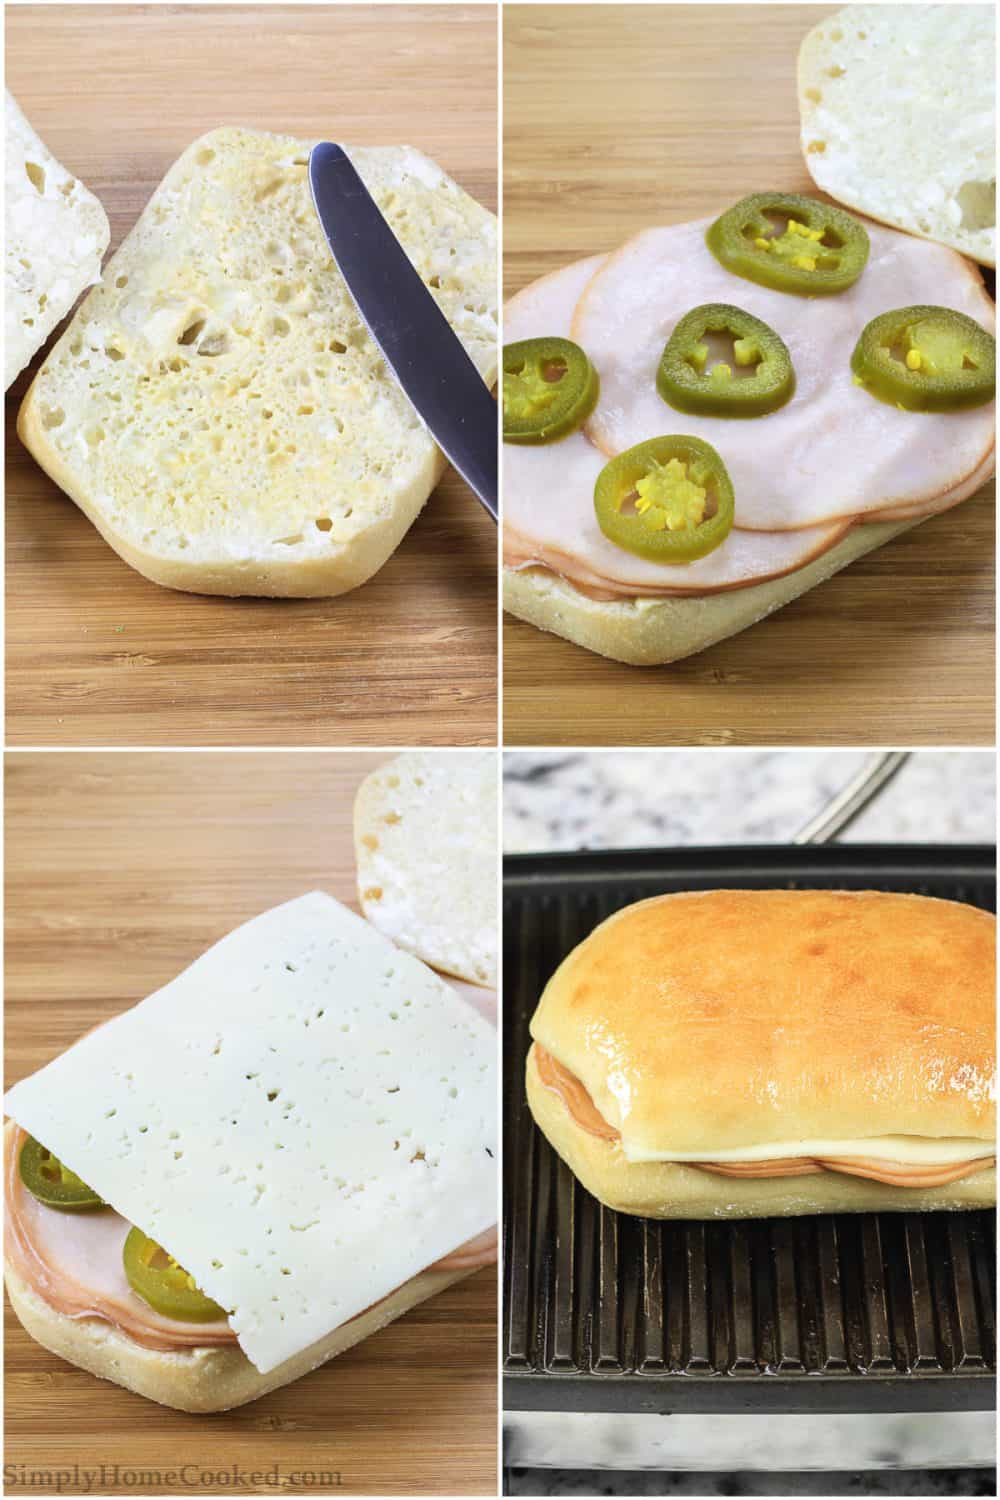 Photo collage of the process of making a panini recipe using turkey, havarti, and jalapeno